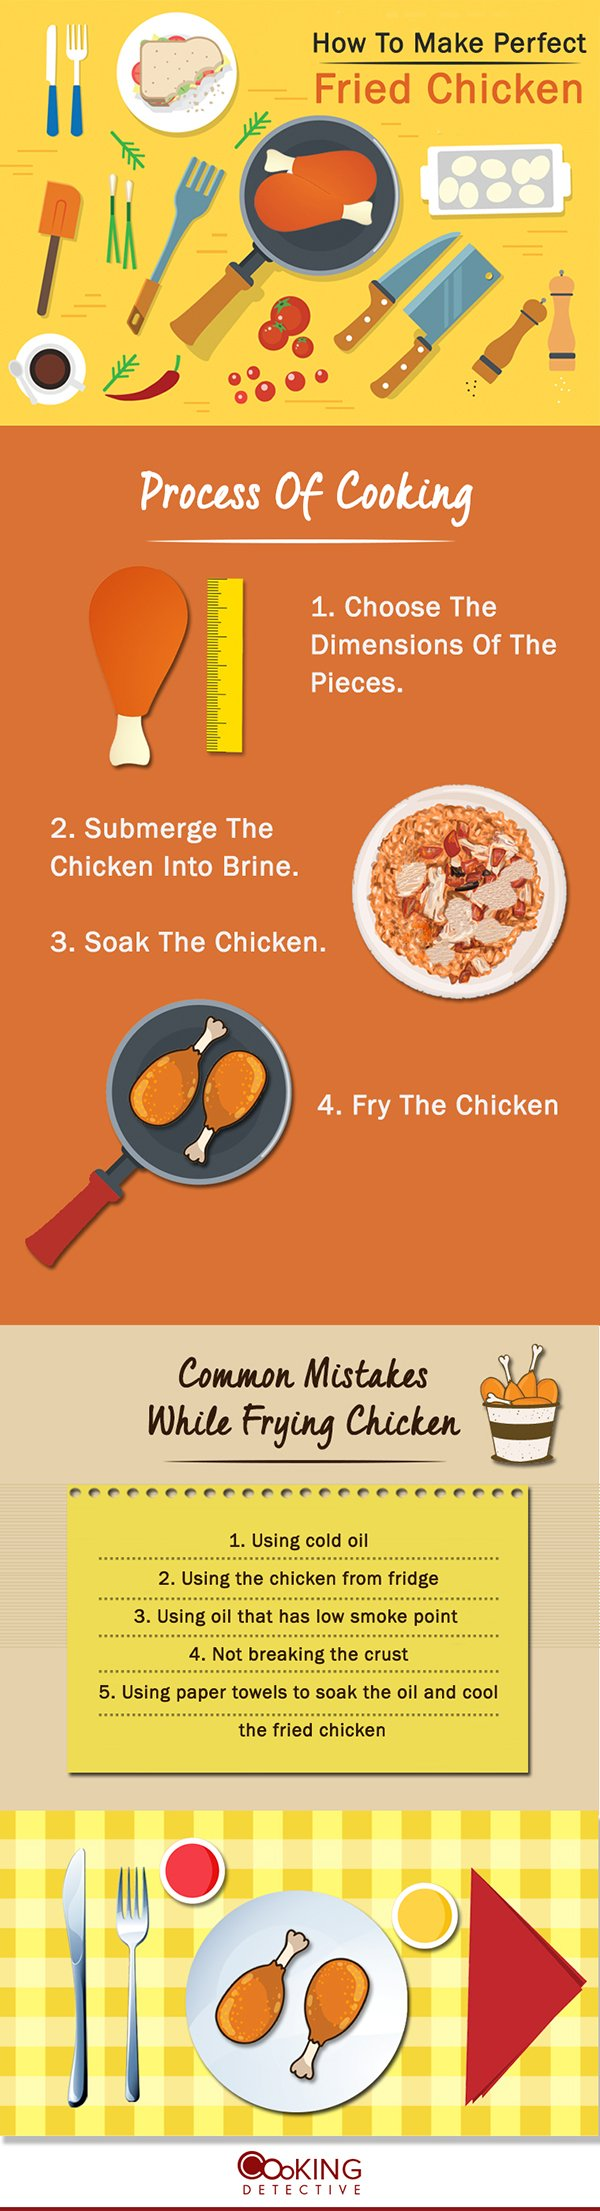 how-to-make-perfect-fried-chicken-600